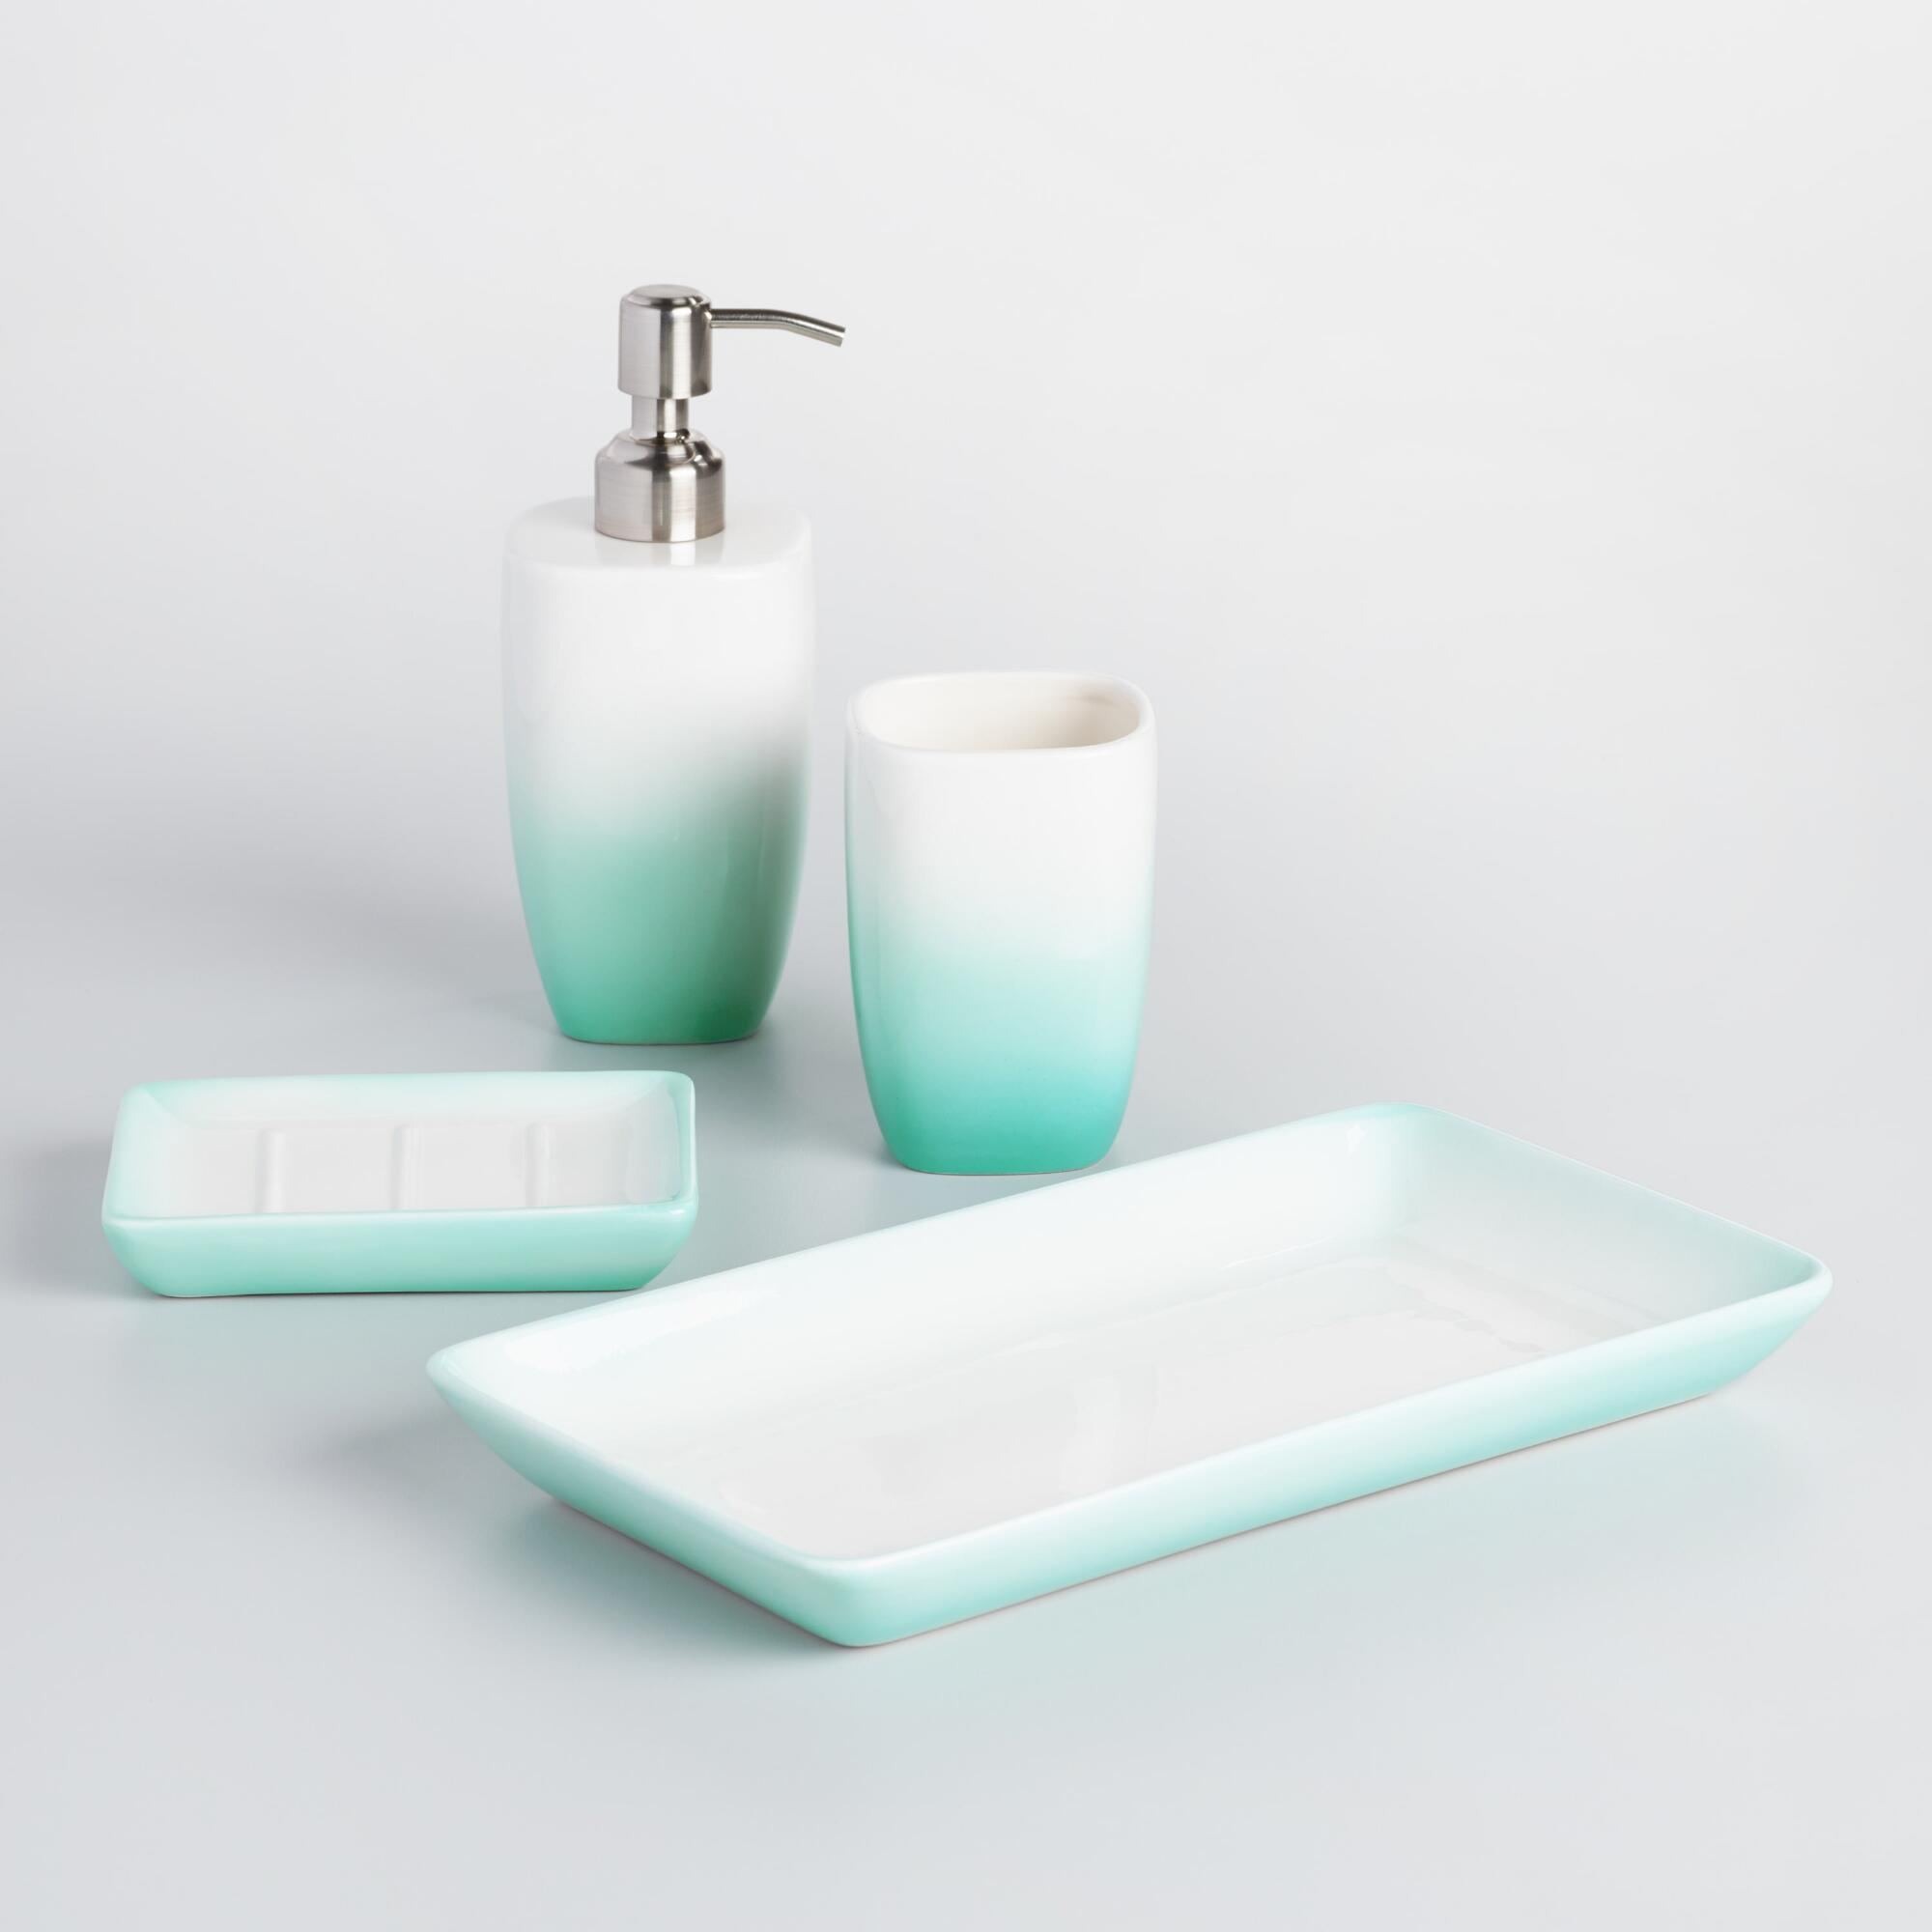 Aqua ombre ceramic bath accessories collection world market for Aqua bath accessories